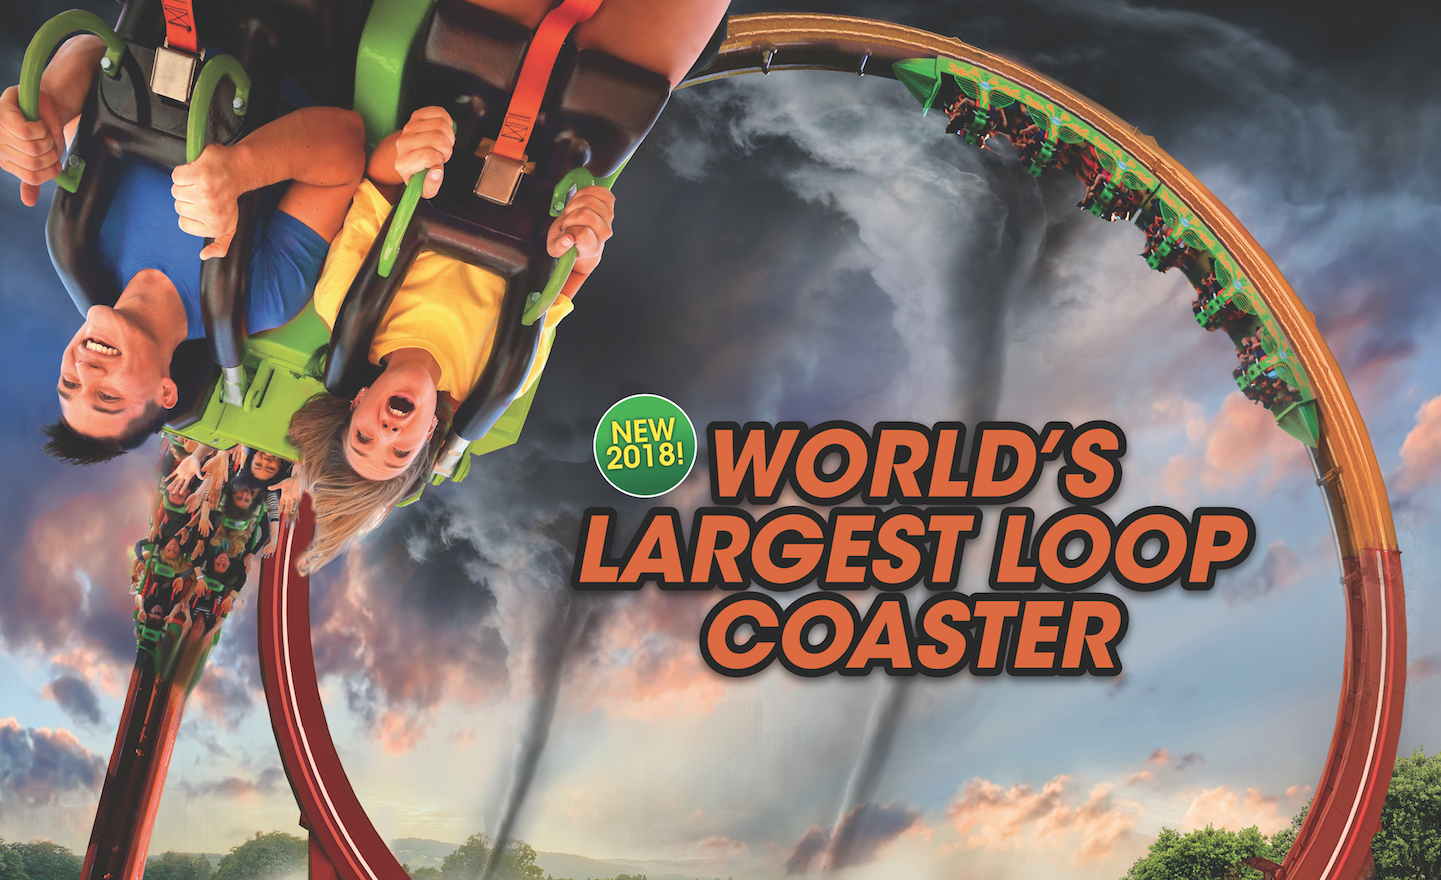 This record-breaking new ride will be coming to Six Flags Great America in 2018.